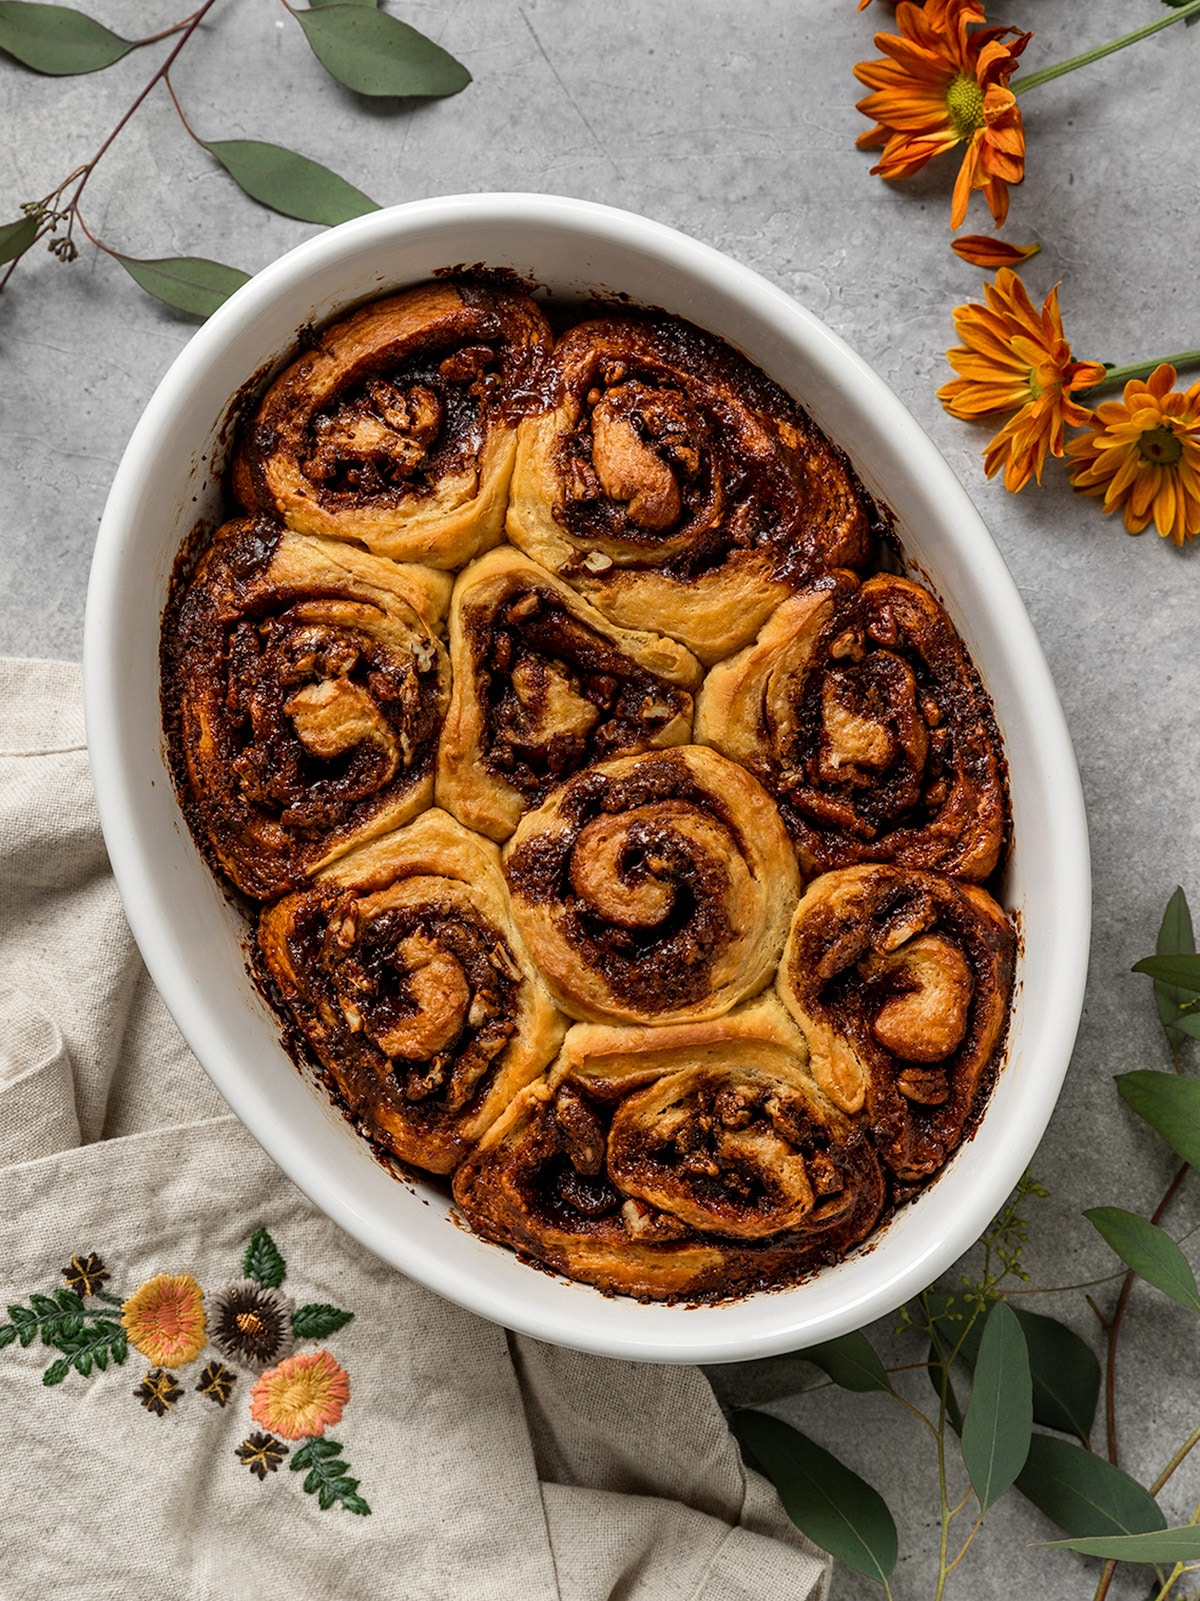 oval pan filled with baked sweet potato cinnamon rolls